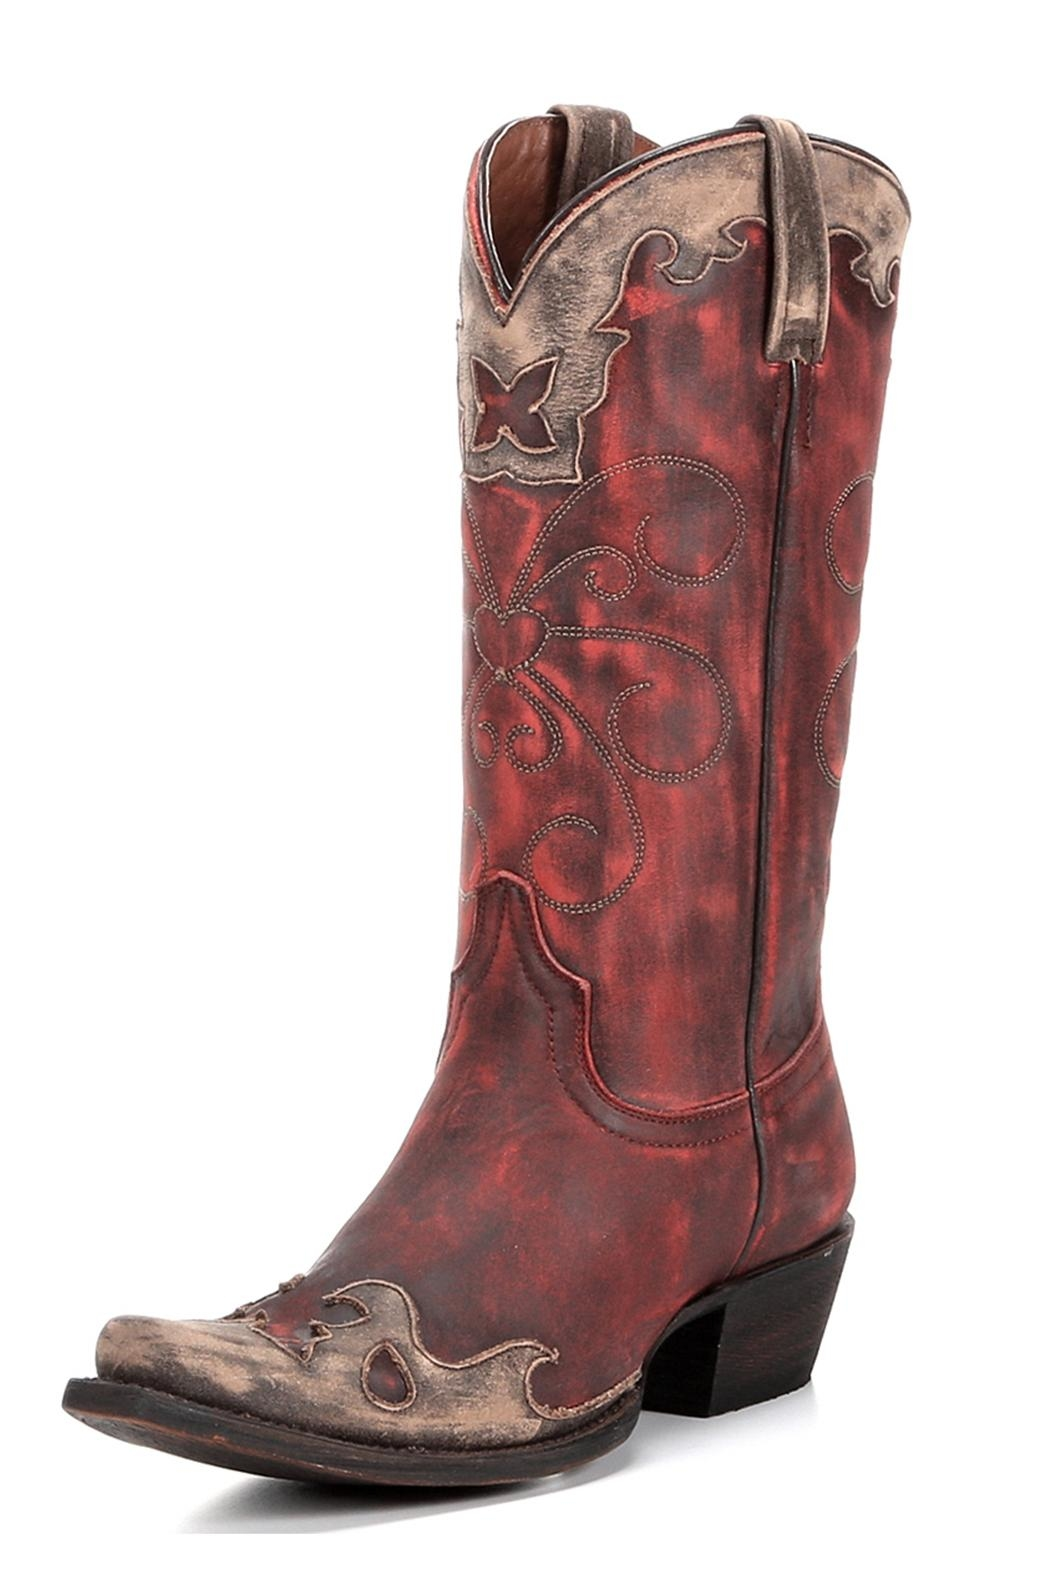 American Rebel Boot Company Women's Nikki Boots - Main Image